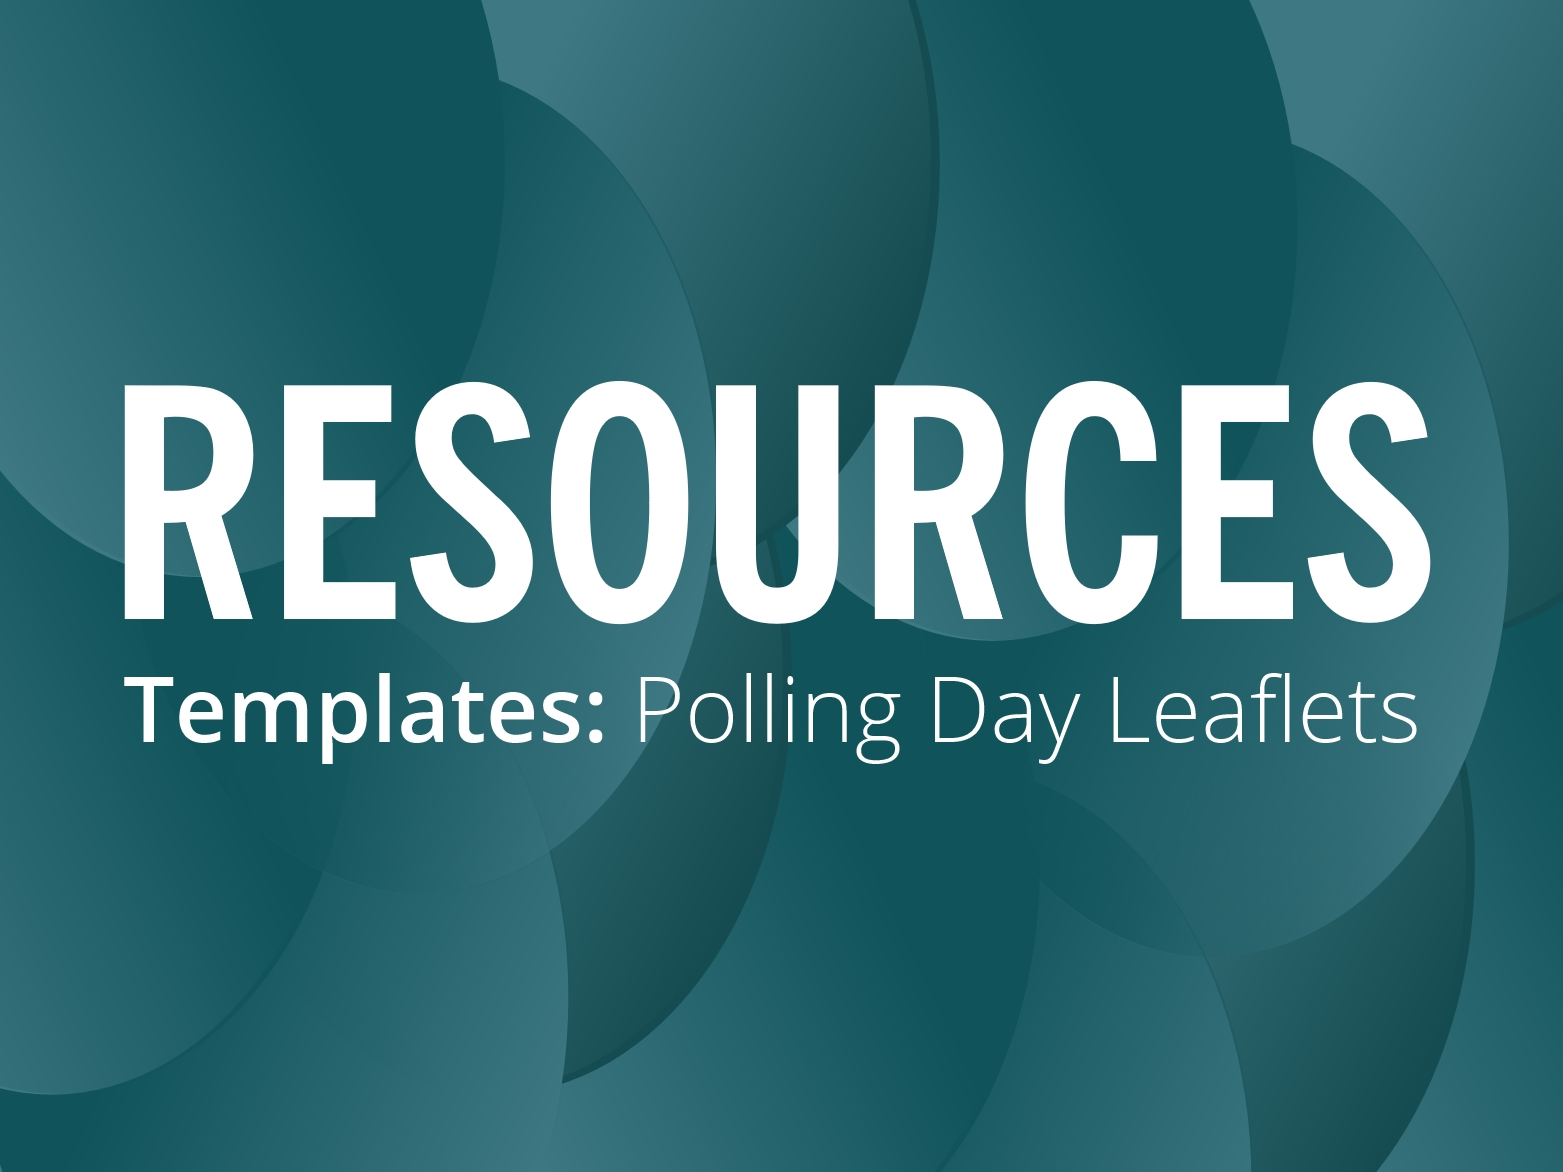 RESOURCES: Polling Day templates